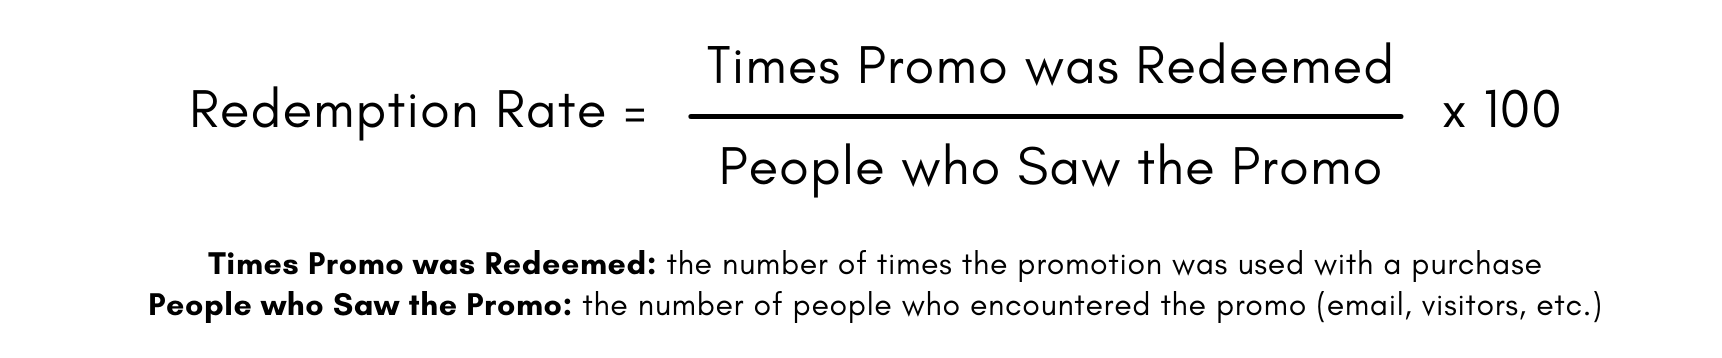 Formula for Redemption Rate: number of times the promo was redeemed divided by the number of people who saw the promo, times 100.